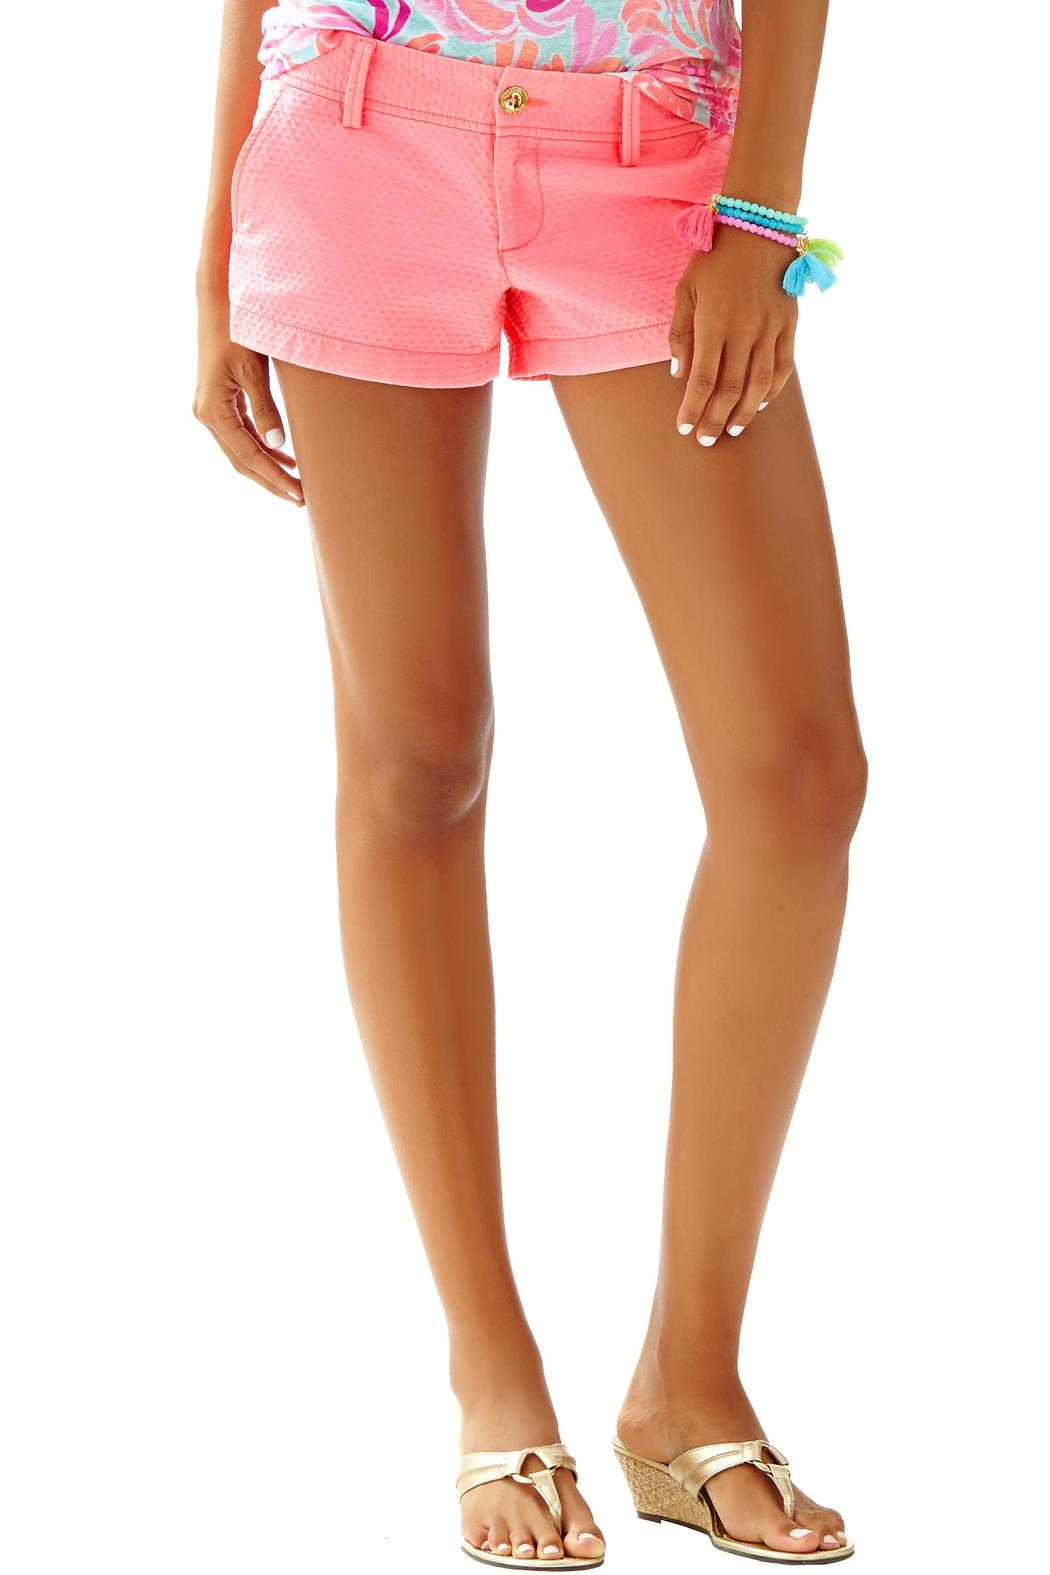 lilly_pulitzer 3 walsh short pink 45265810_l